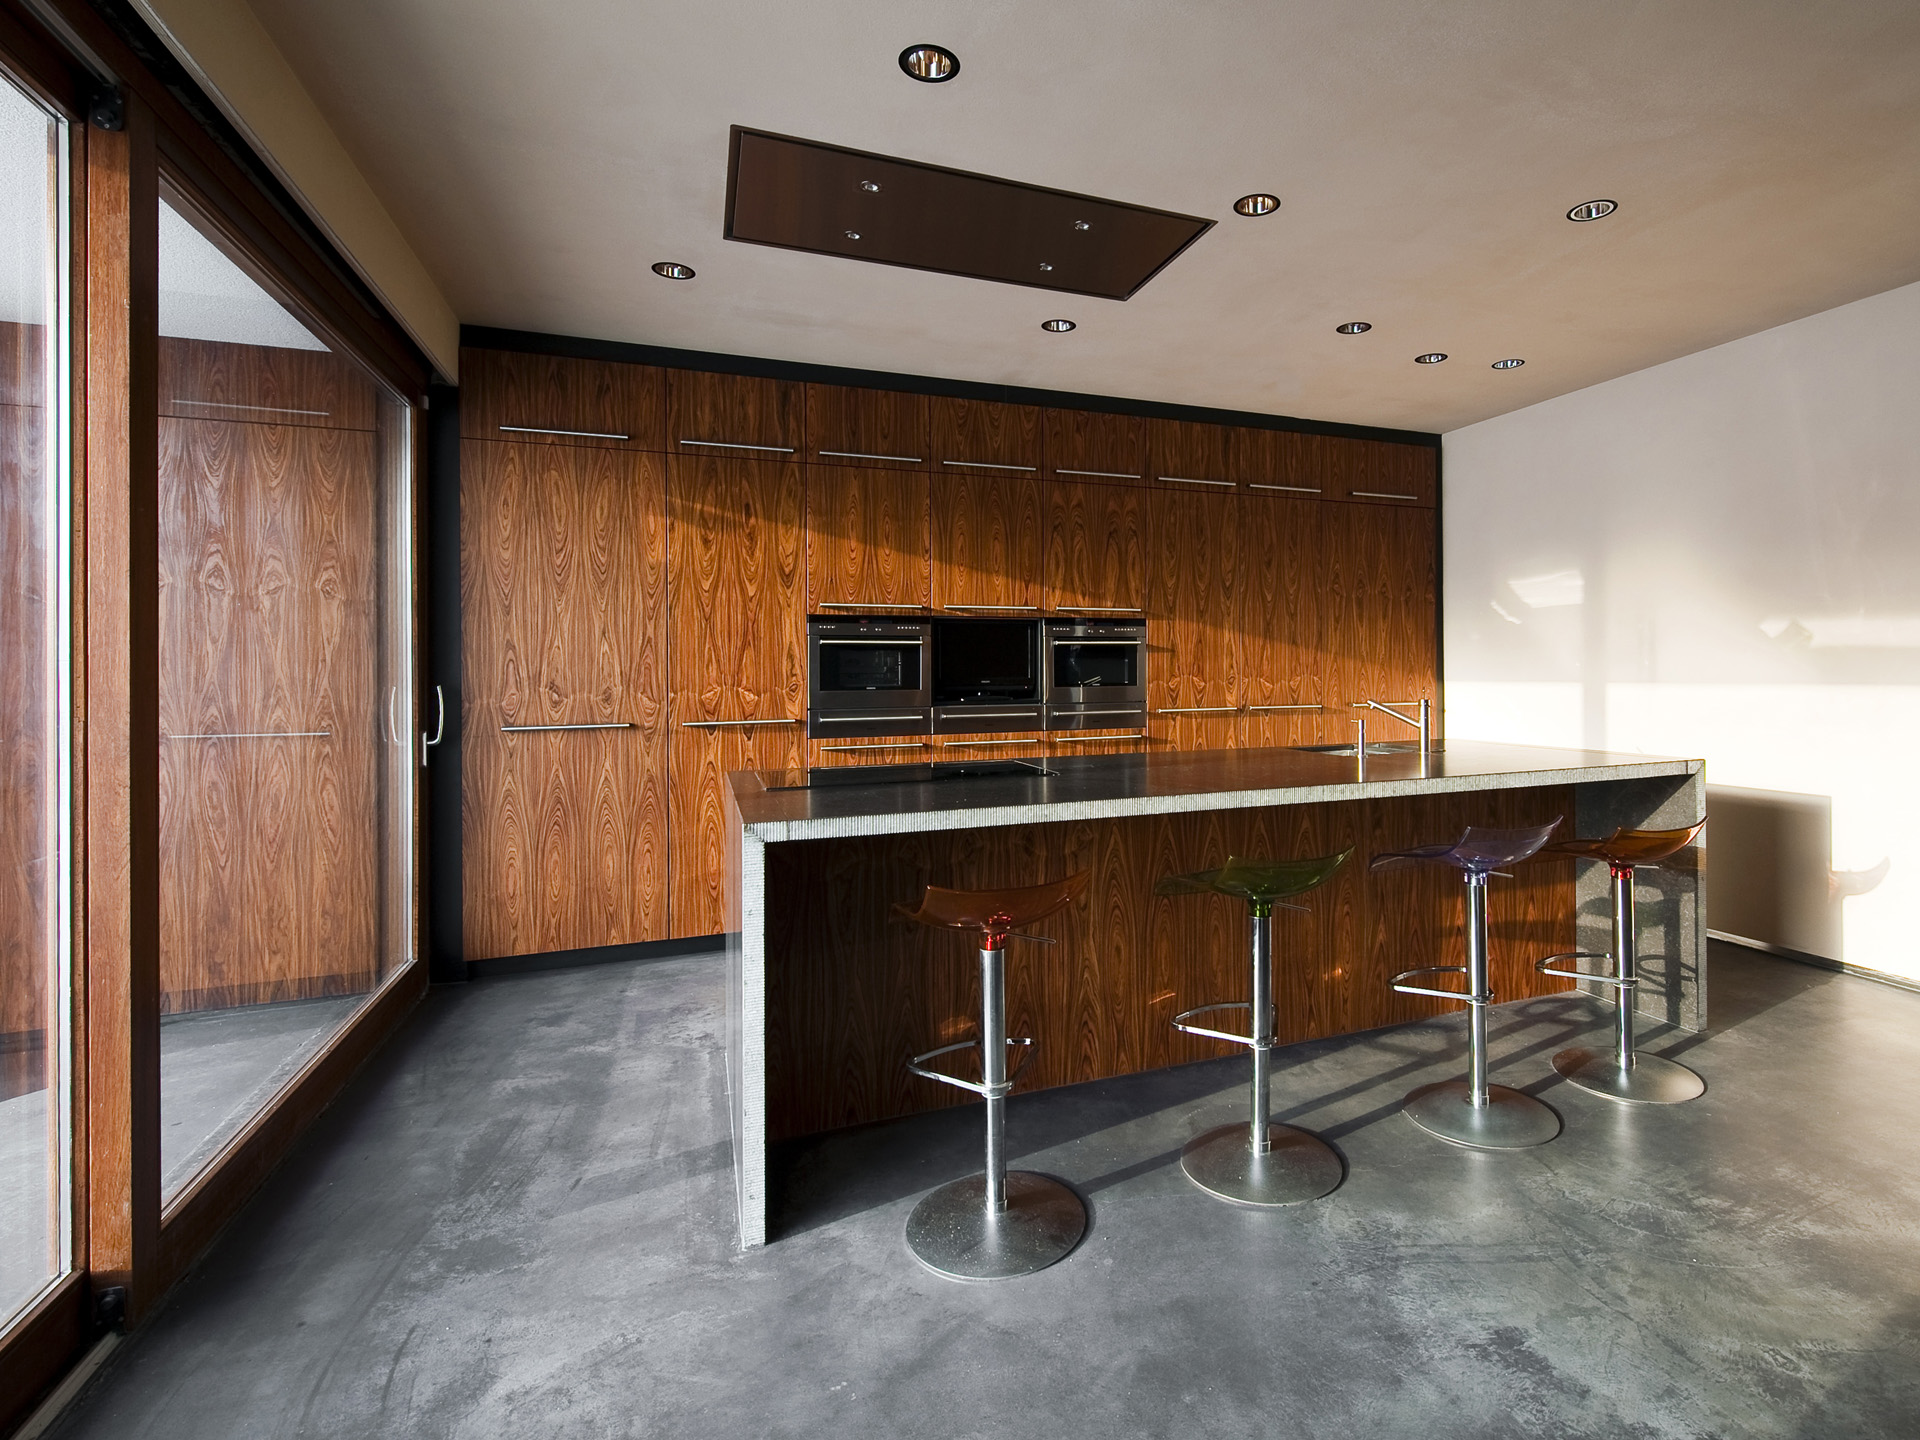 The kitchen walls have a rosewood finishing, giving the room a pure and natural feel.